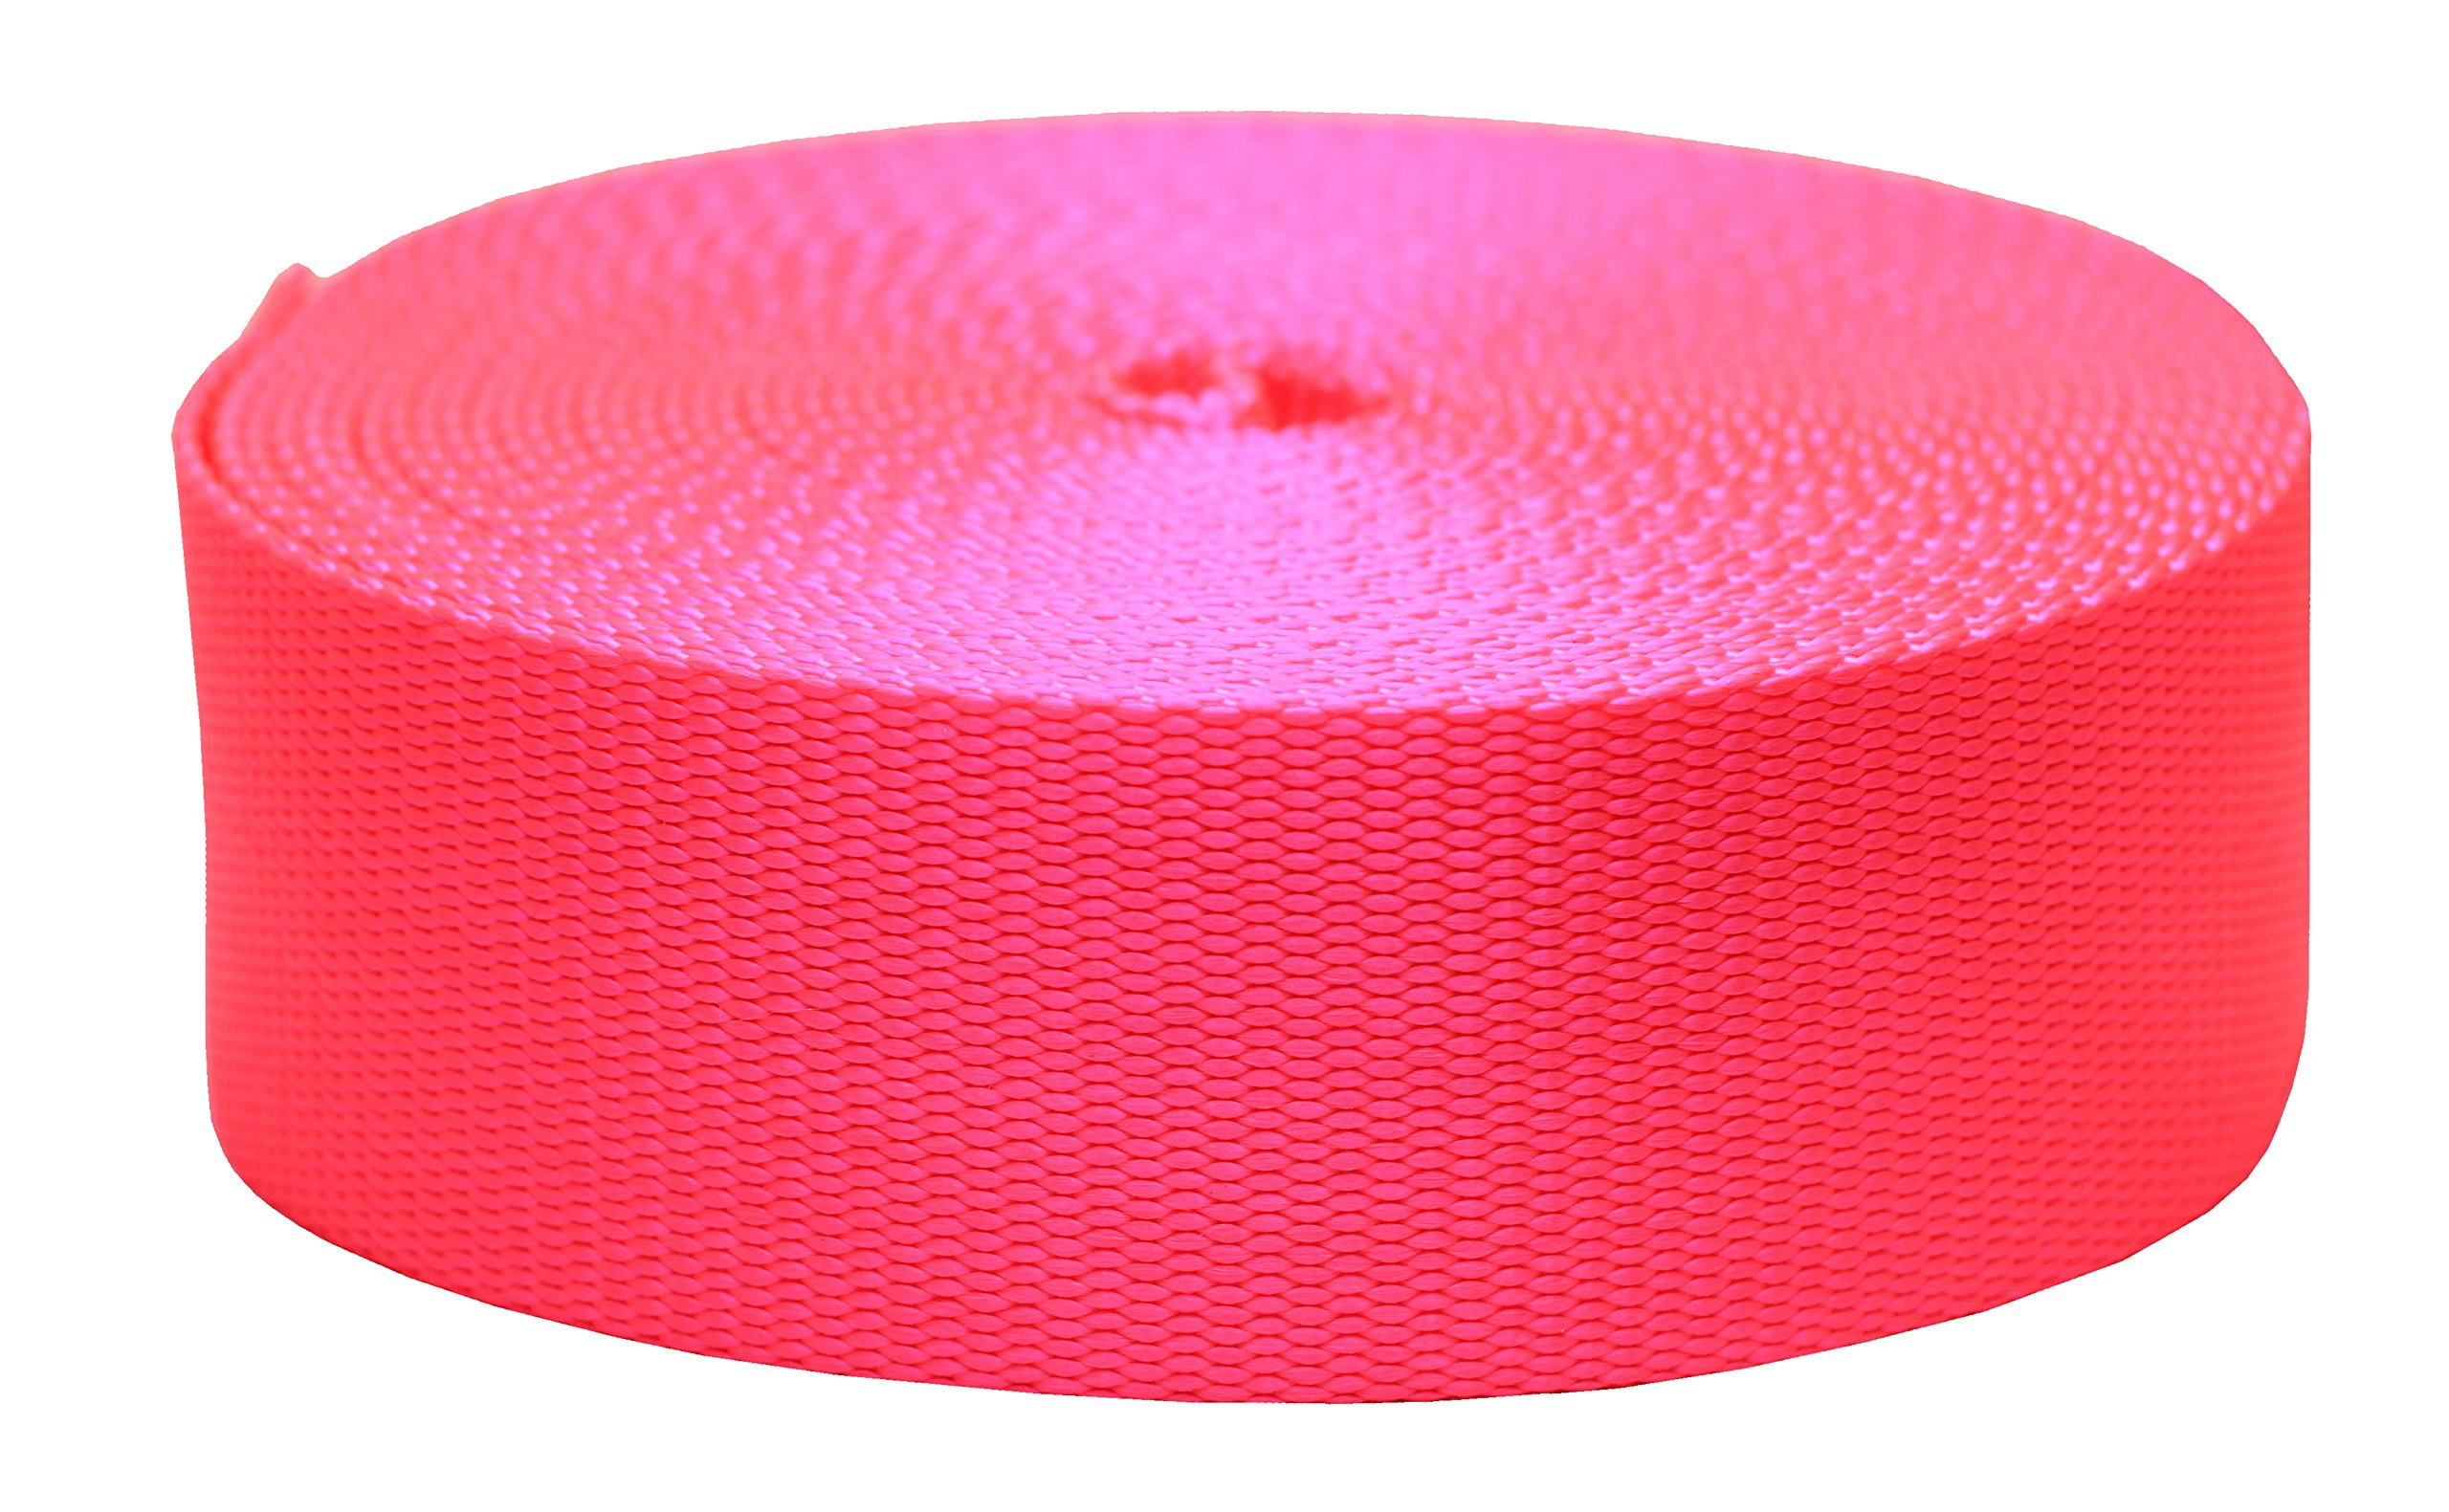 Strapworks Colored Flat Nylon Webbing - Strap For Arts And Crafts, Dog Leashes, Outdoor Activities - 2 Inches x 20 Yards, Hot Pink by Strapworks